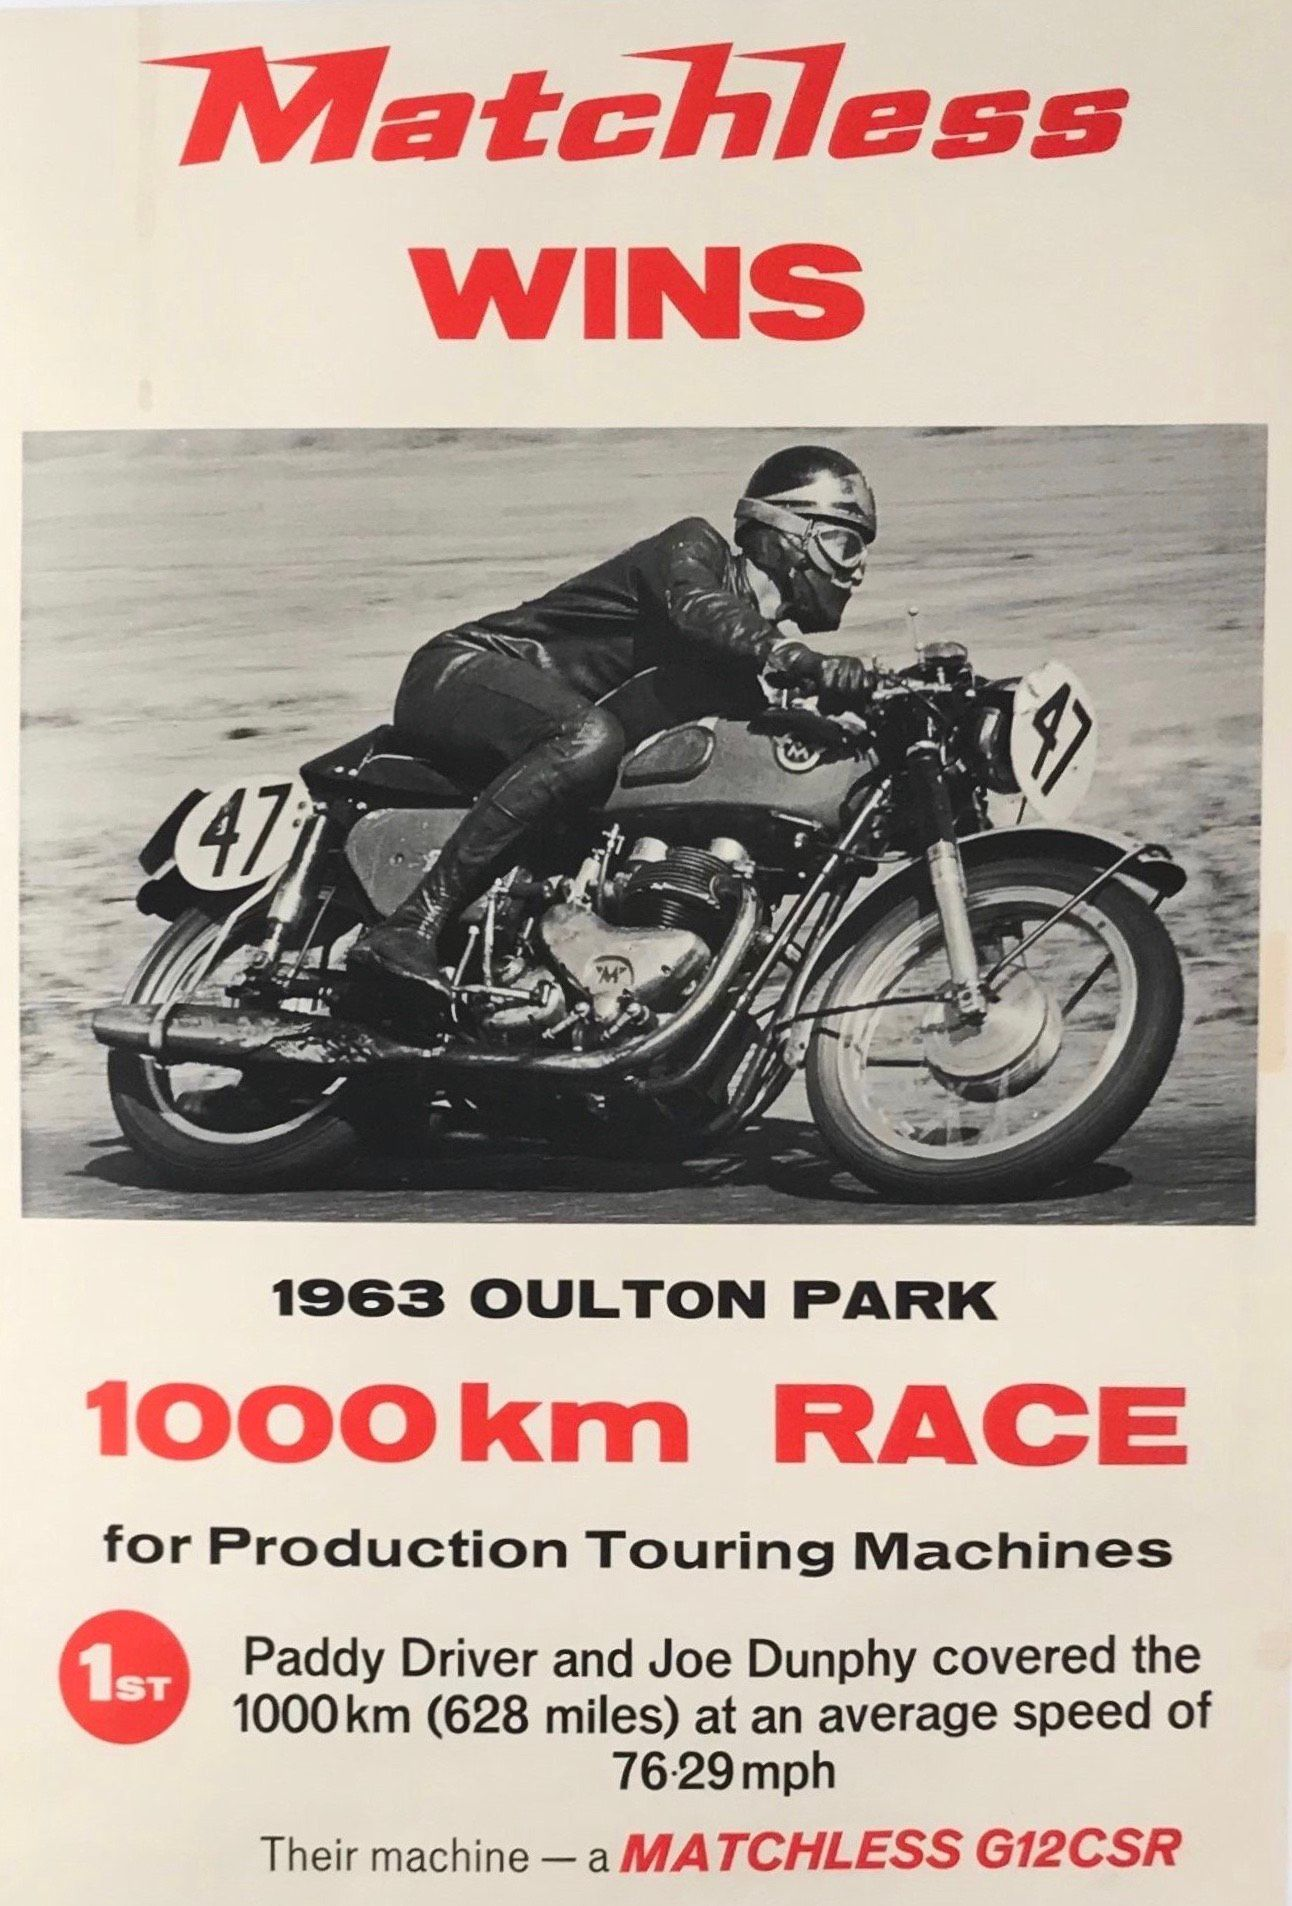 1963 Matchless motorcycle advertising poster